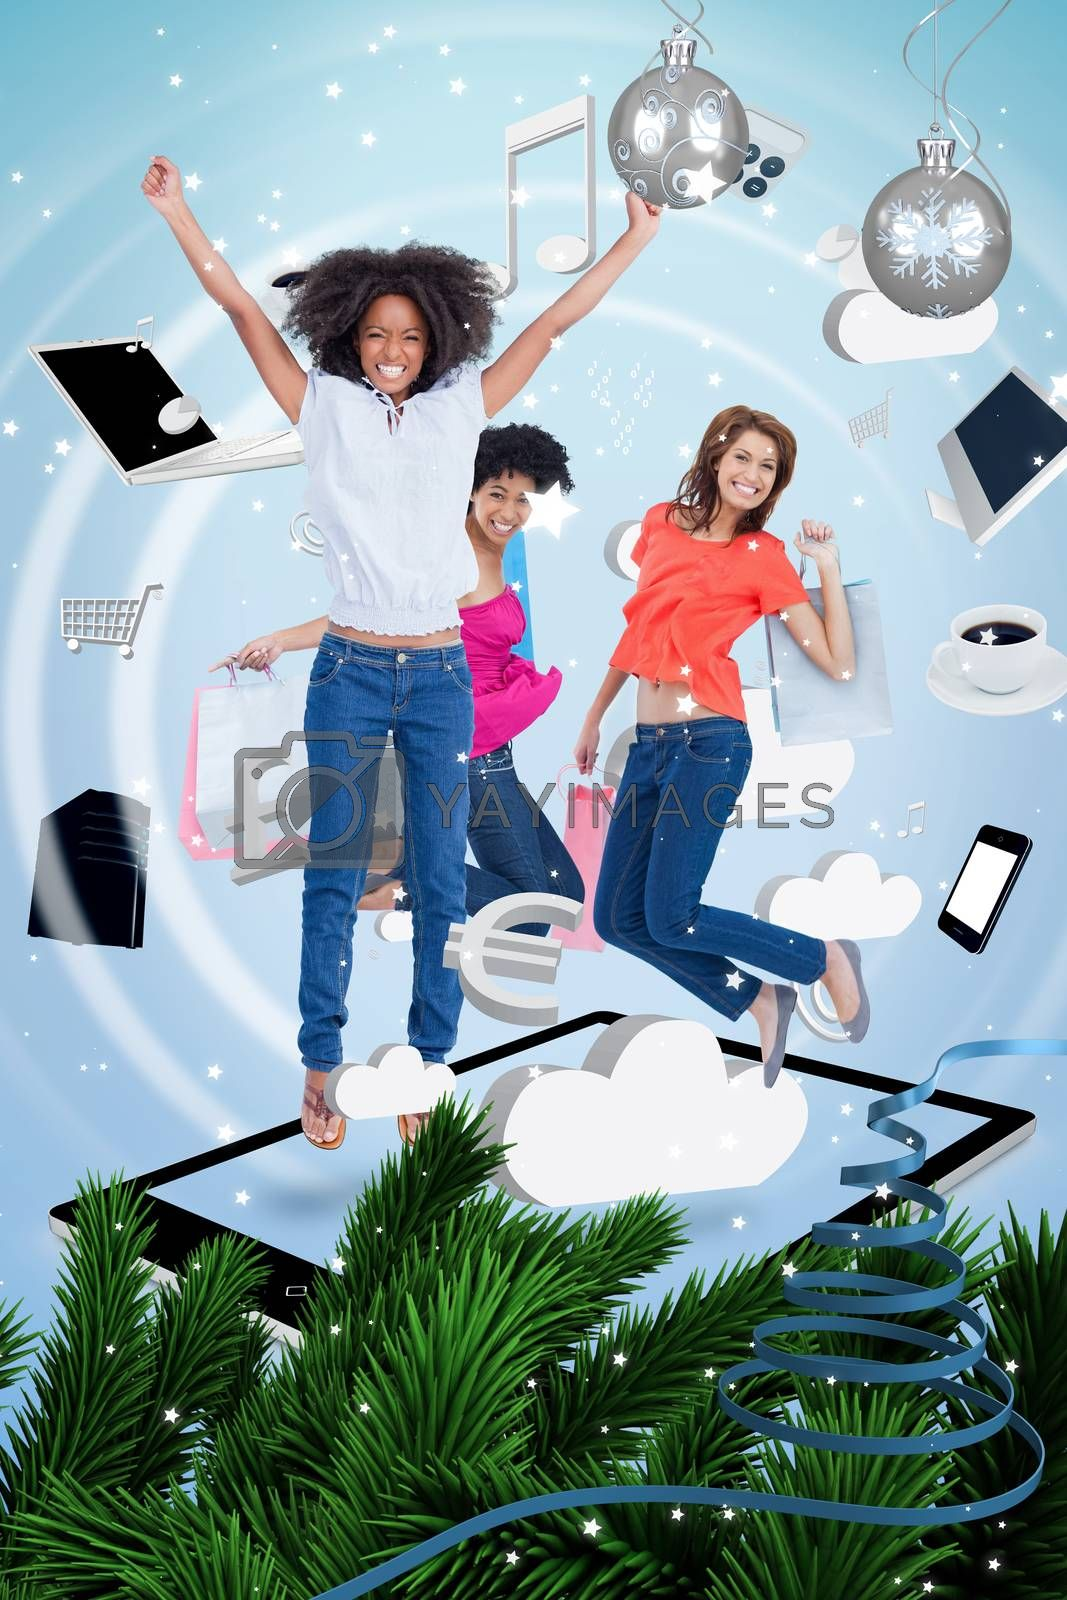 Three cute women jumping on a tablet pc against twinkling stars